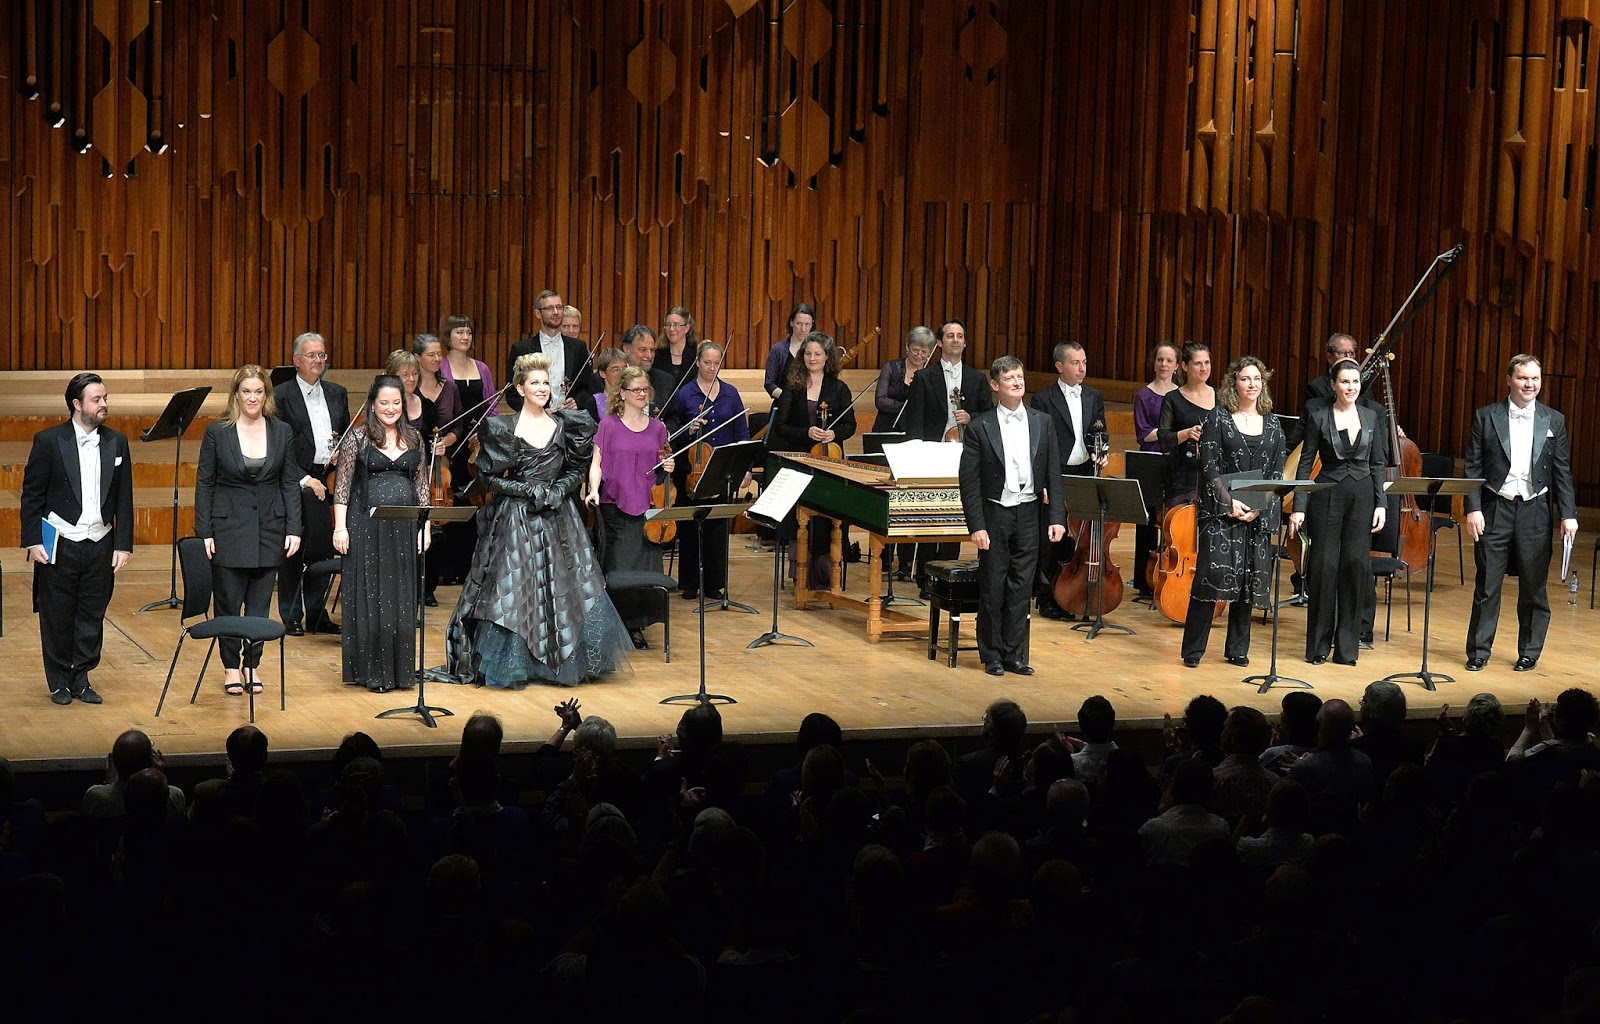 Cast of Handel's Alcina - photo credit Mark Allan/Barbican